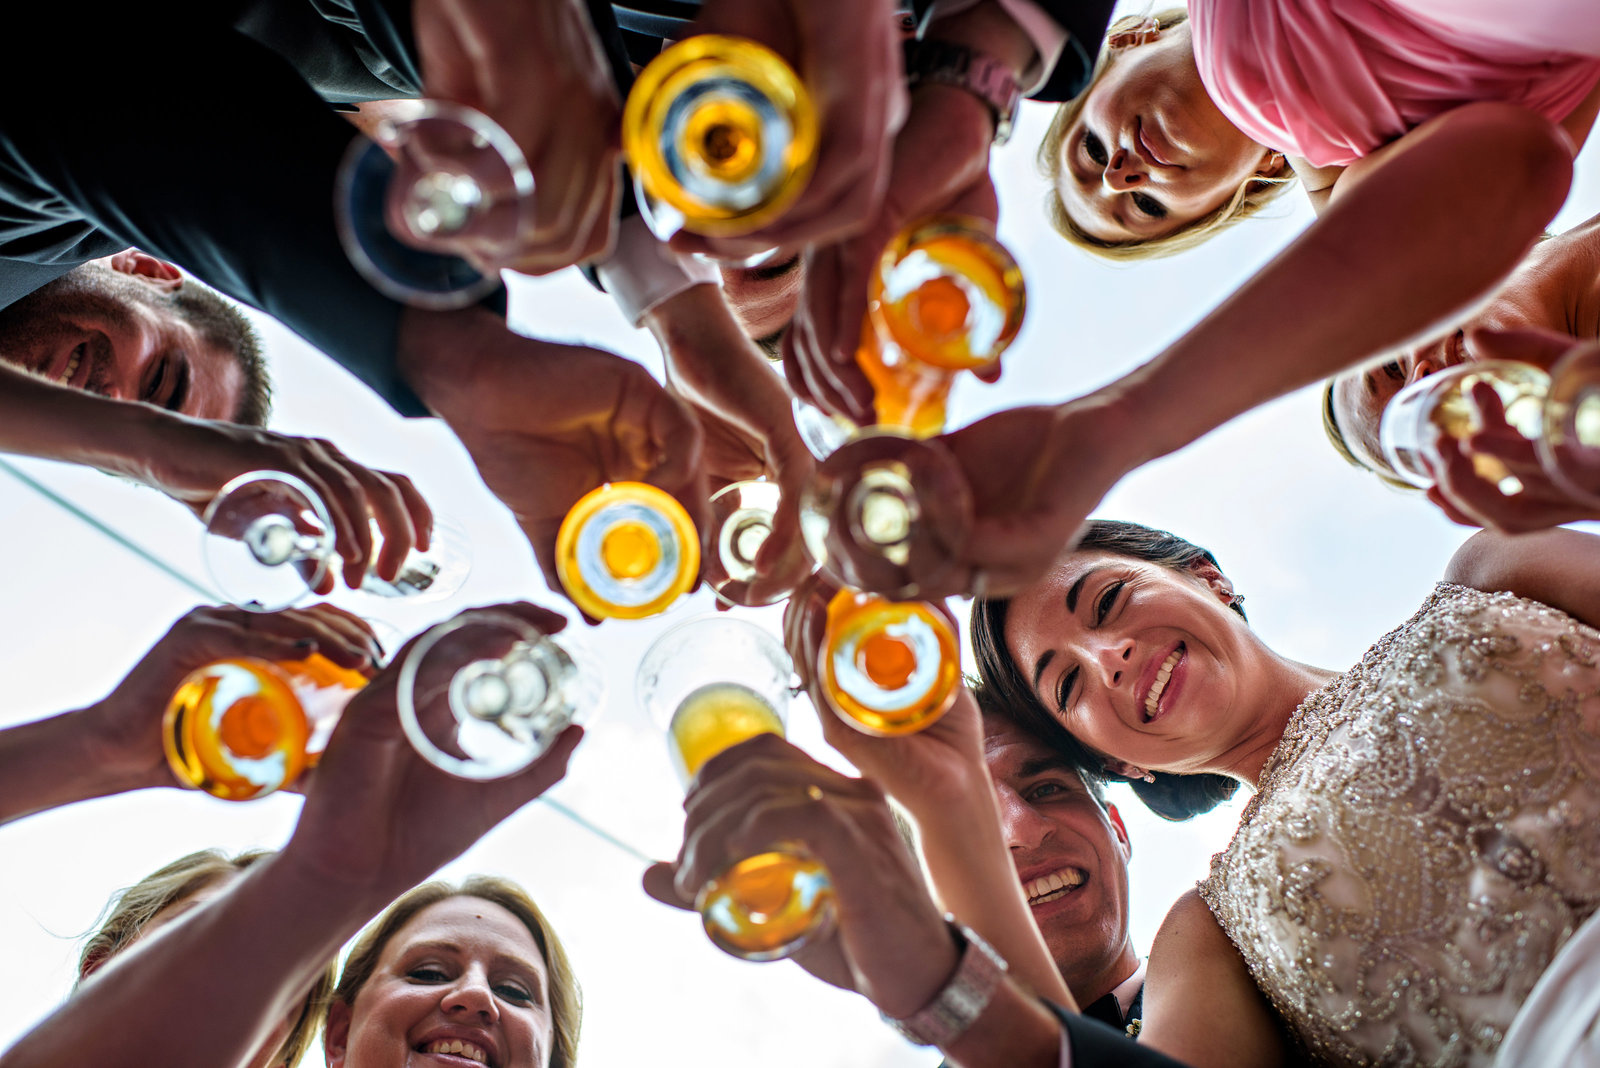 A bridal party cheers to the new couple.